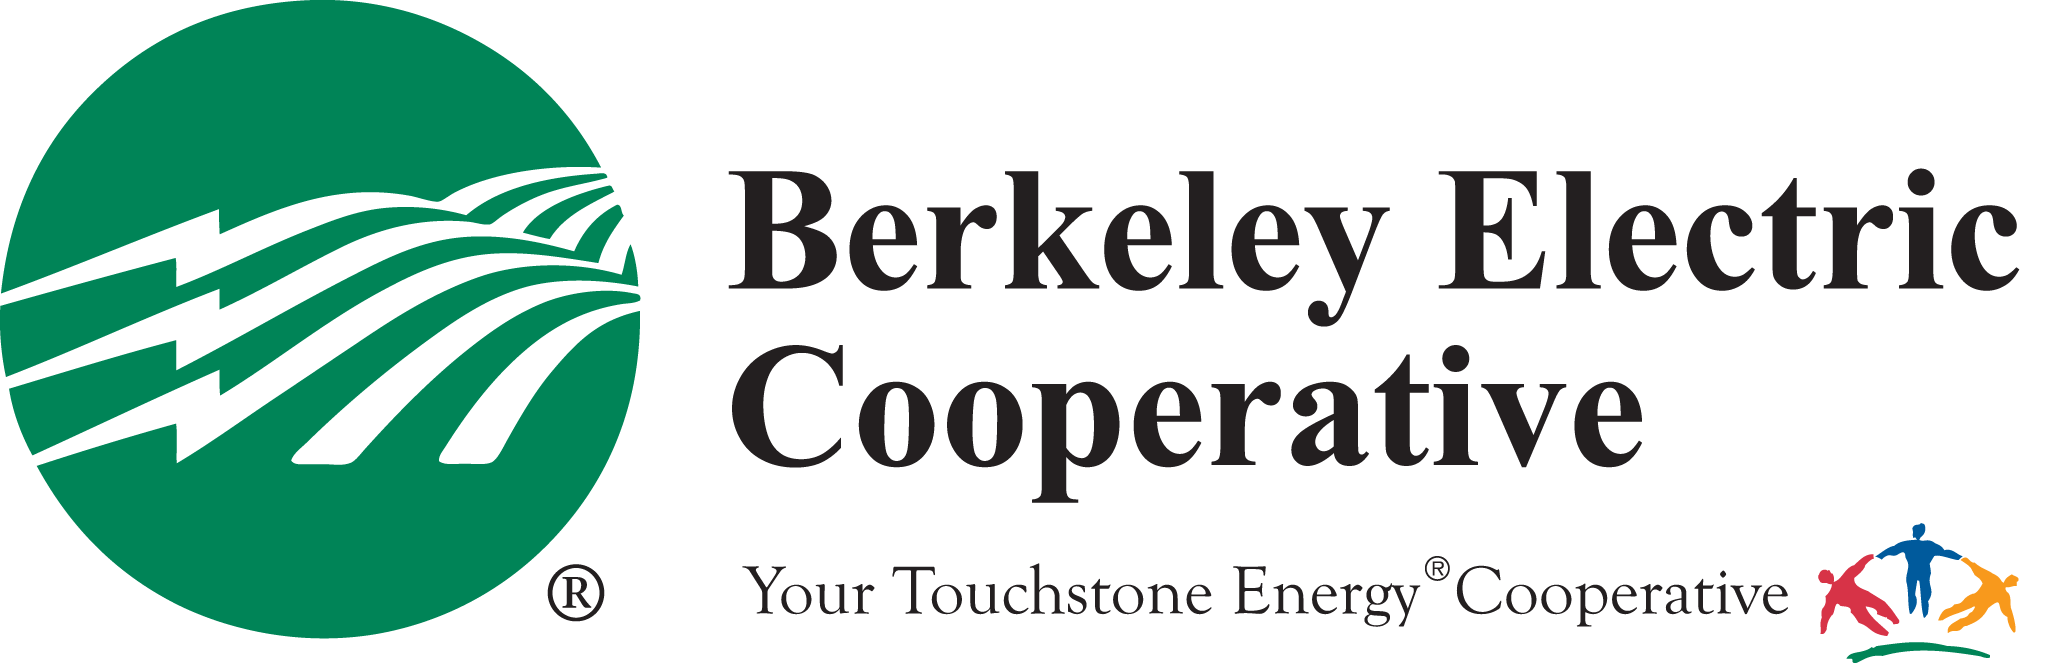 BERKELEY ELECTRIC COOPERATIVE LOGO AND HYPERLINK